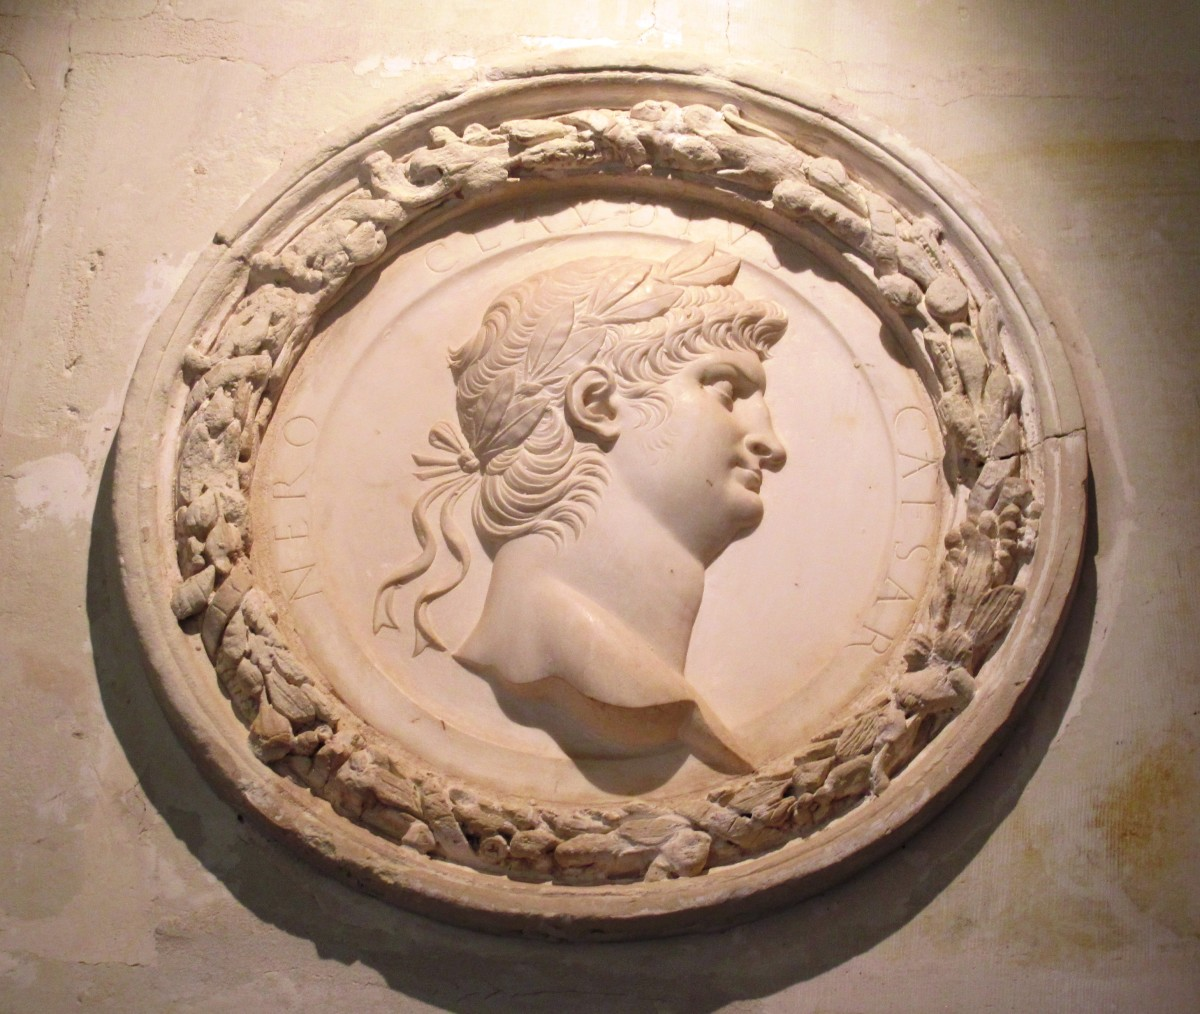 Catherine de' Medici added marble medallions in the likeness of Roman emperors.